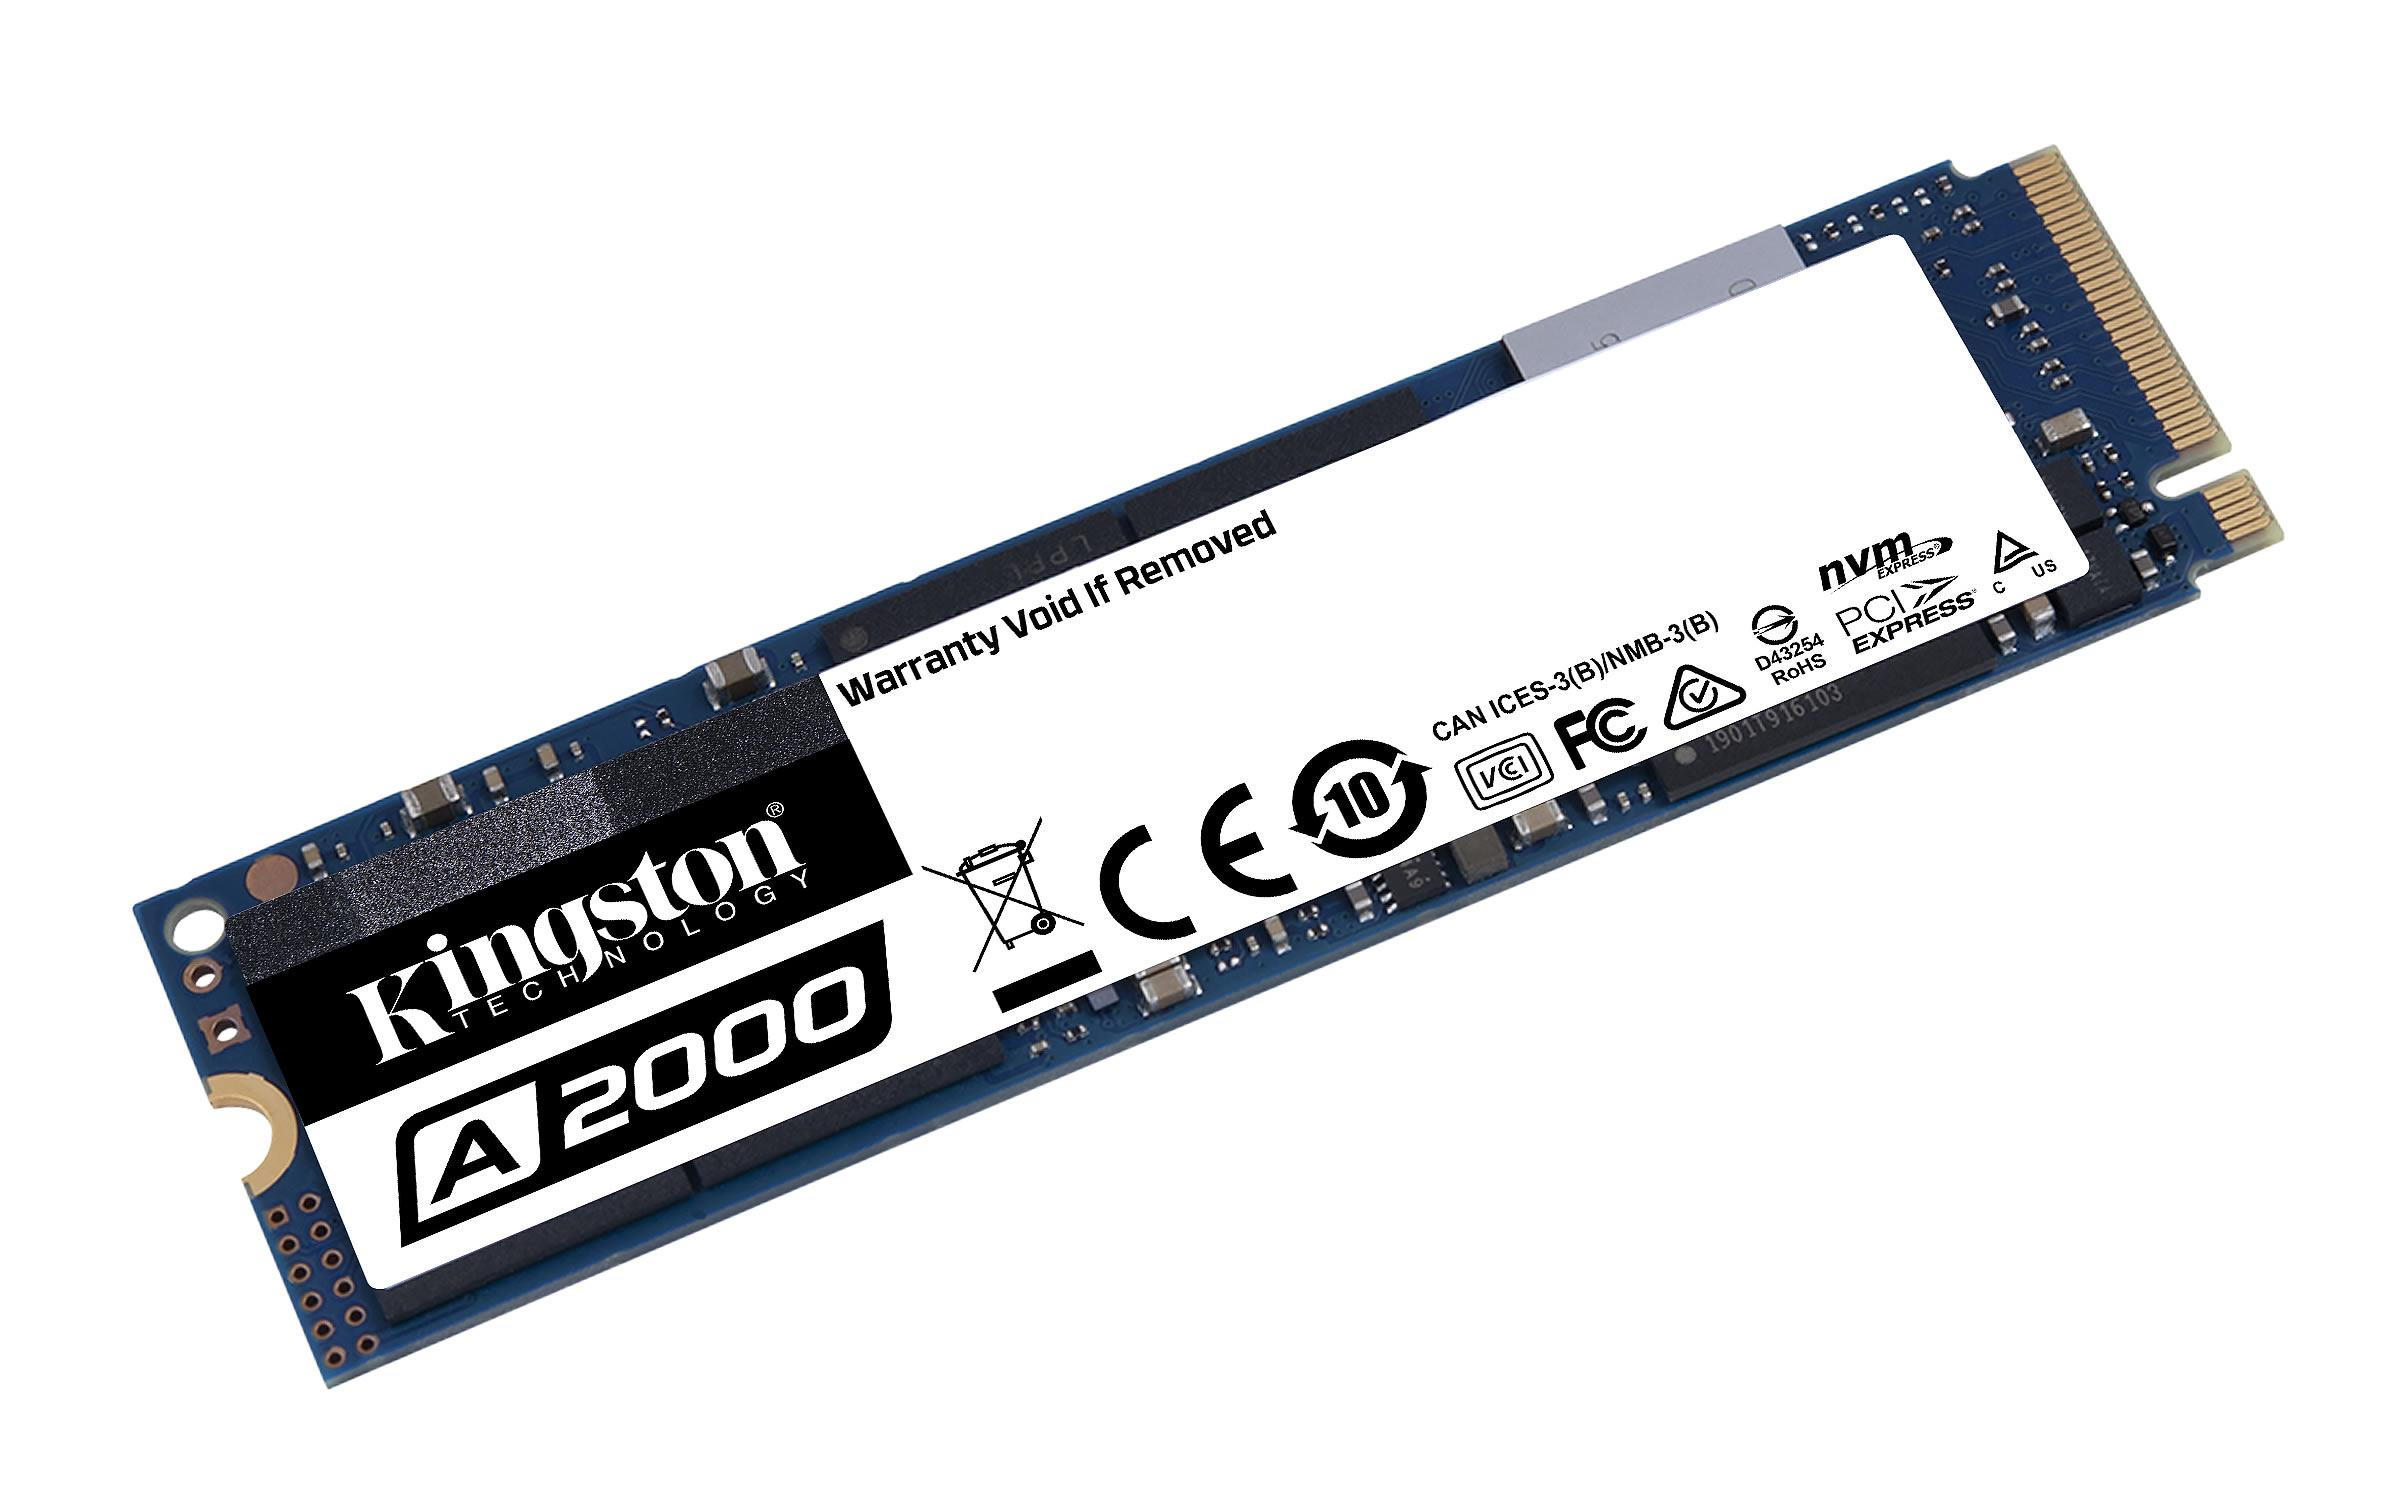 Kingston A2000 250GB 22x80mm PCIe 3.0 x4 M.2 NVMe SSD SA2000M8/250G